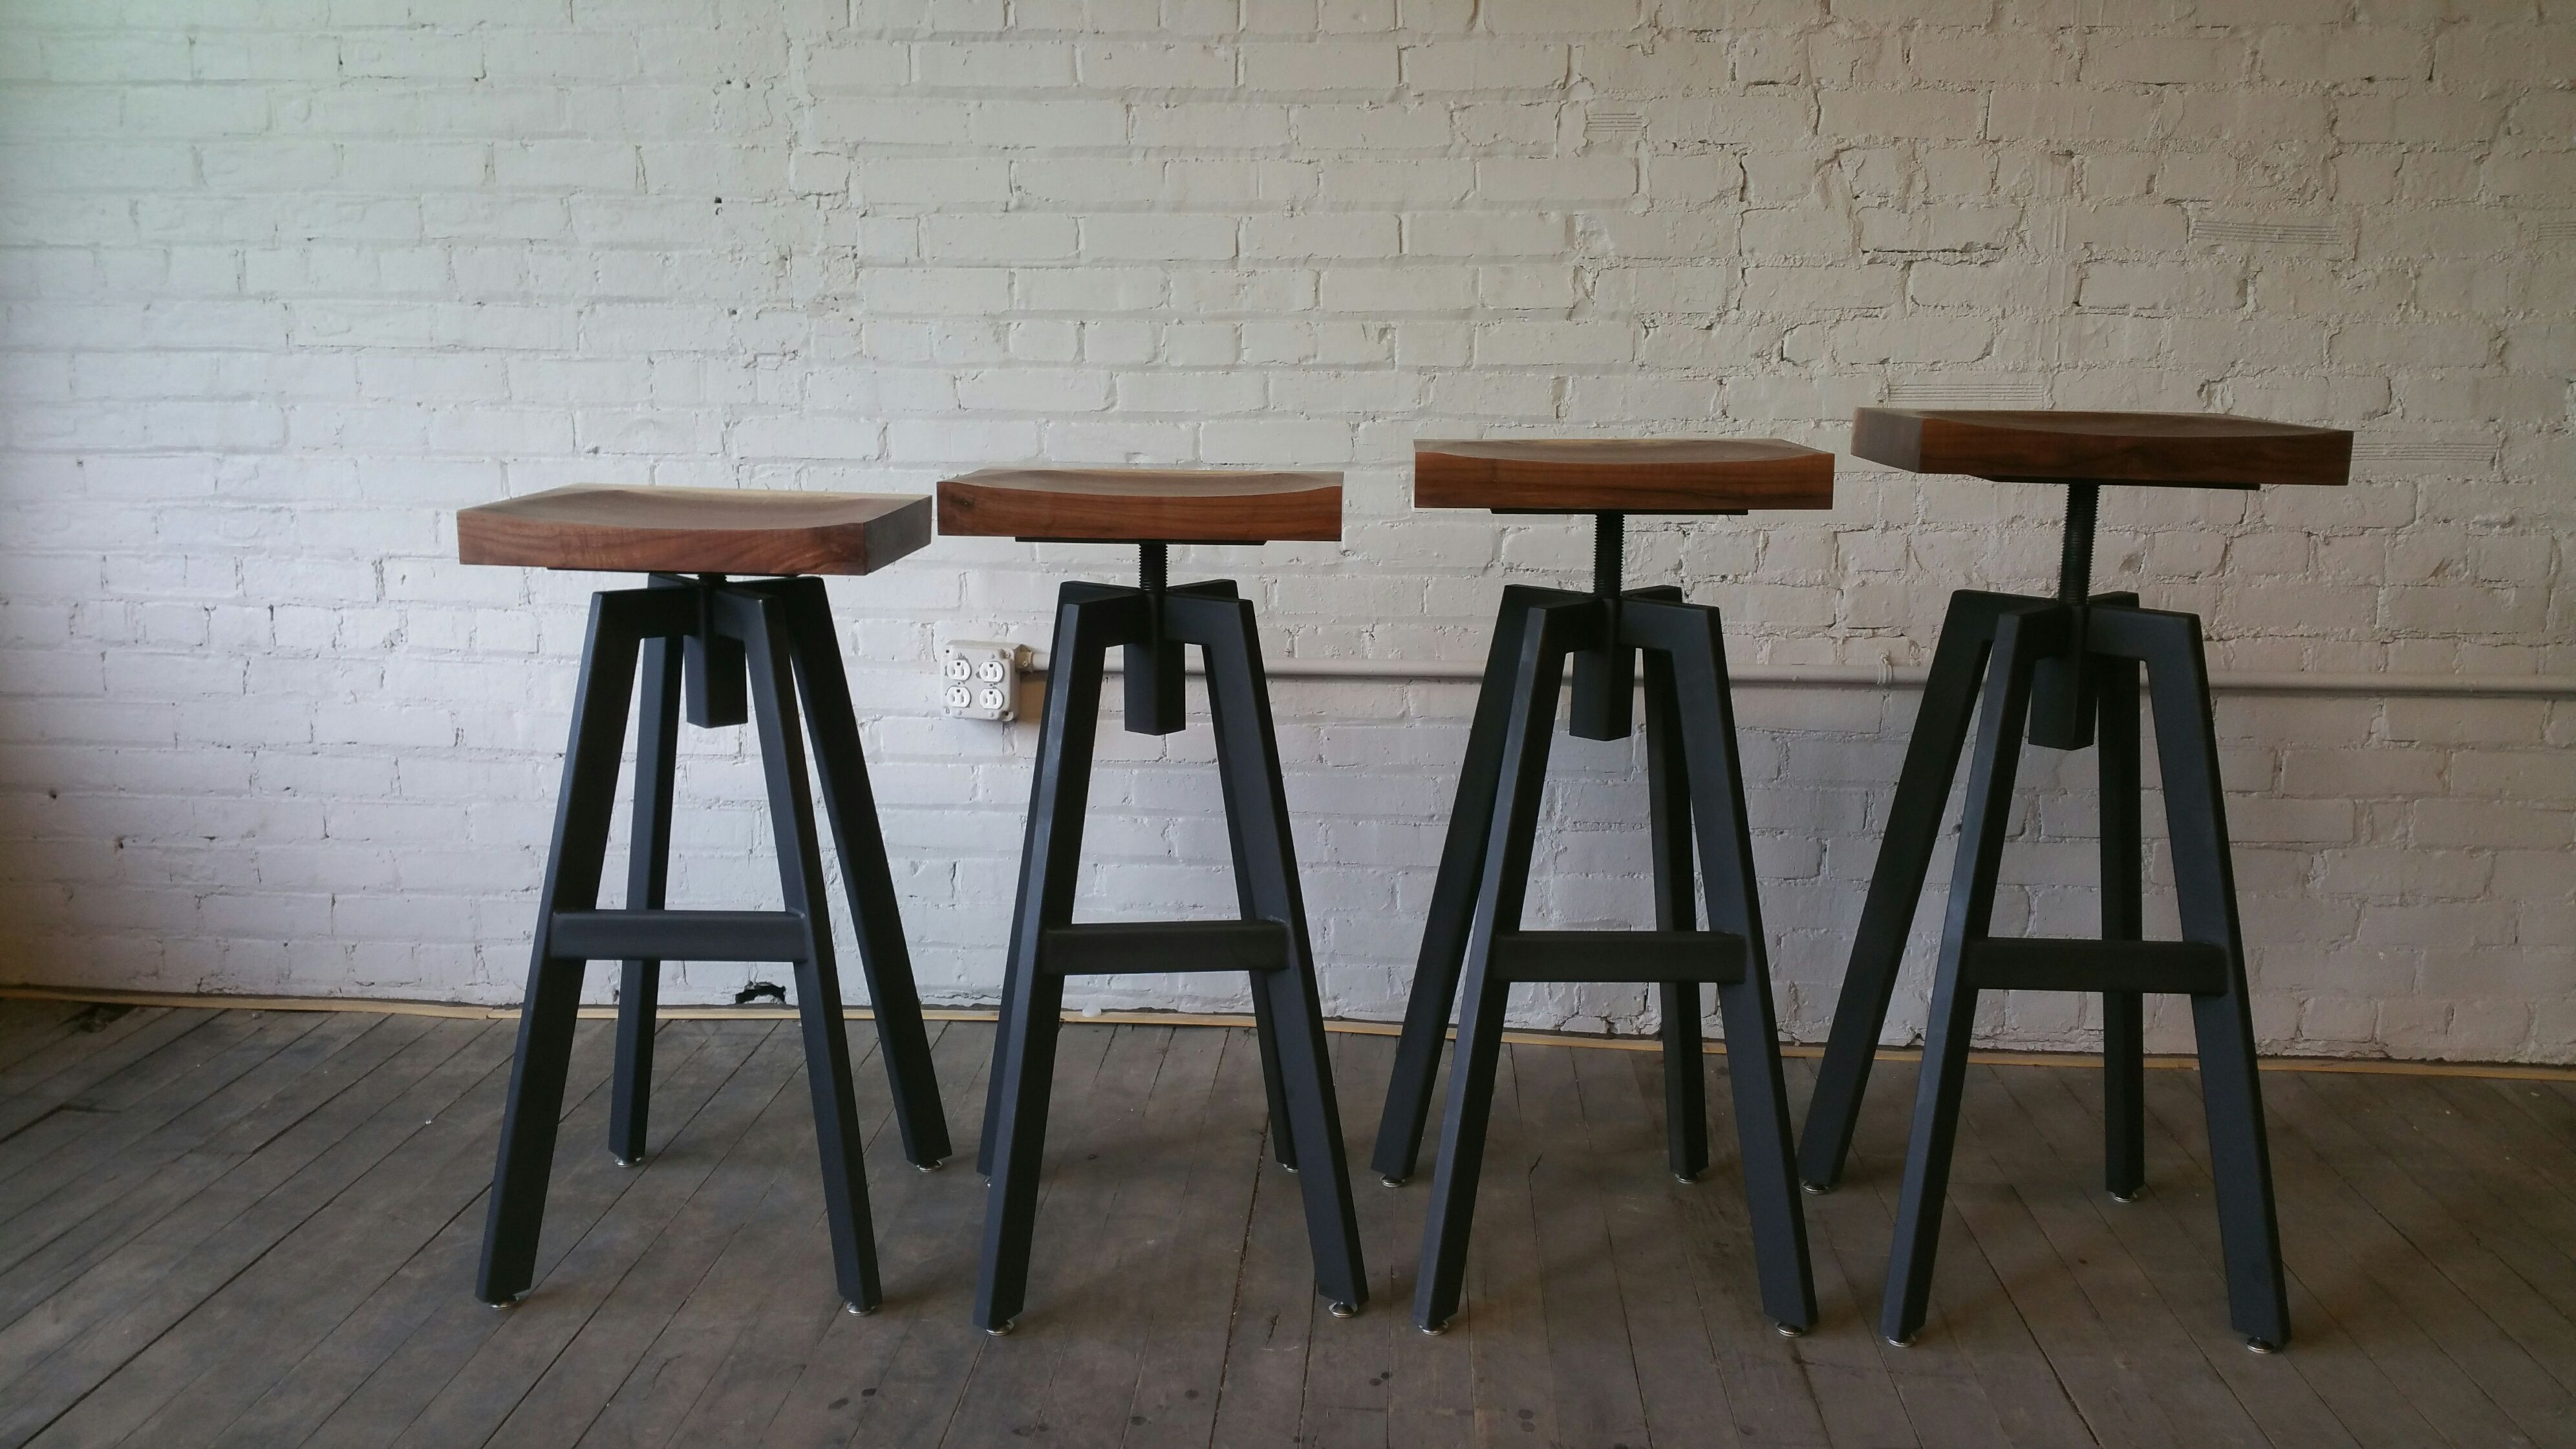 Custom made industrial inspired bar stool